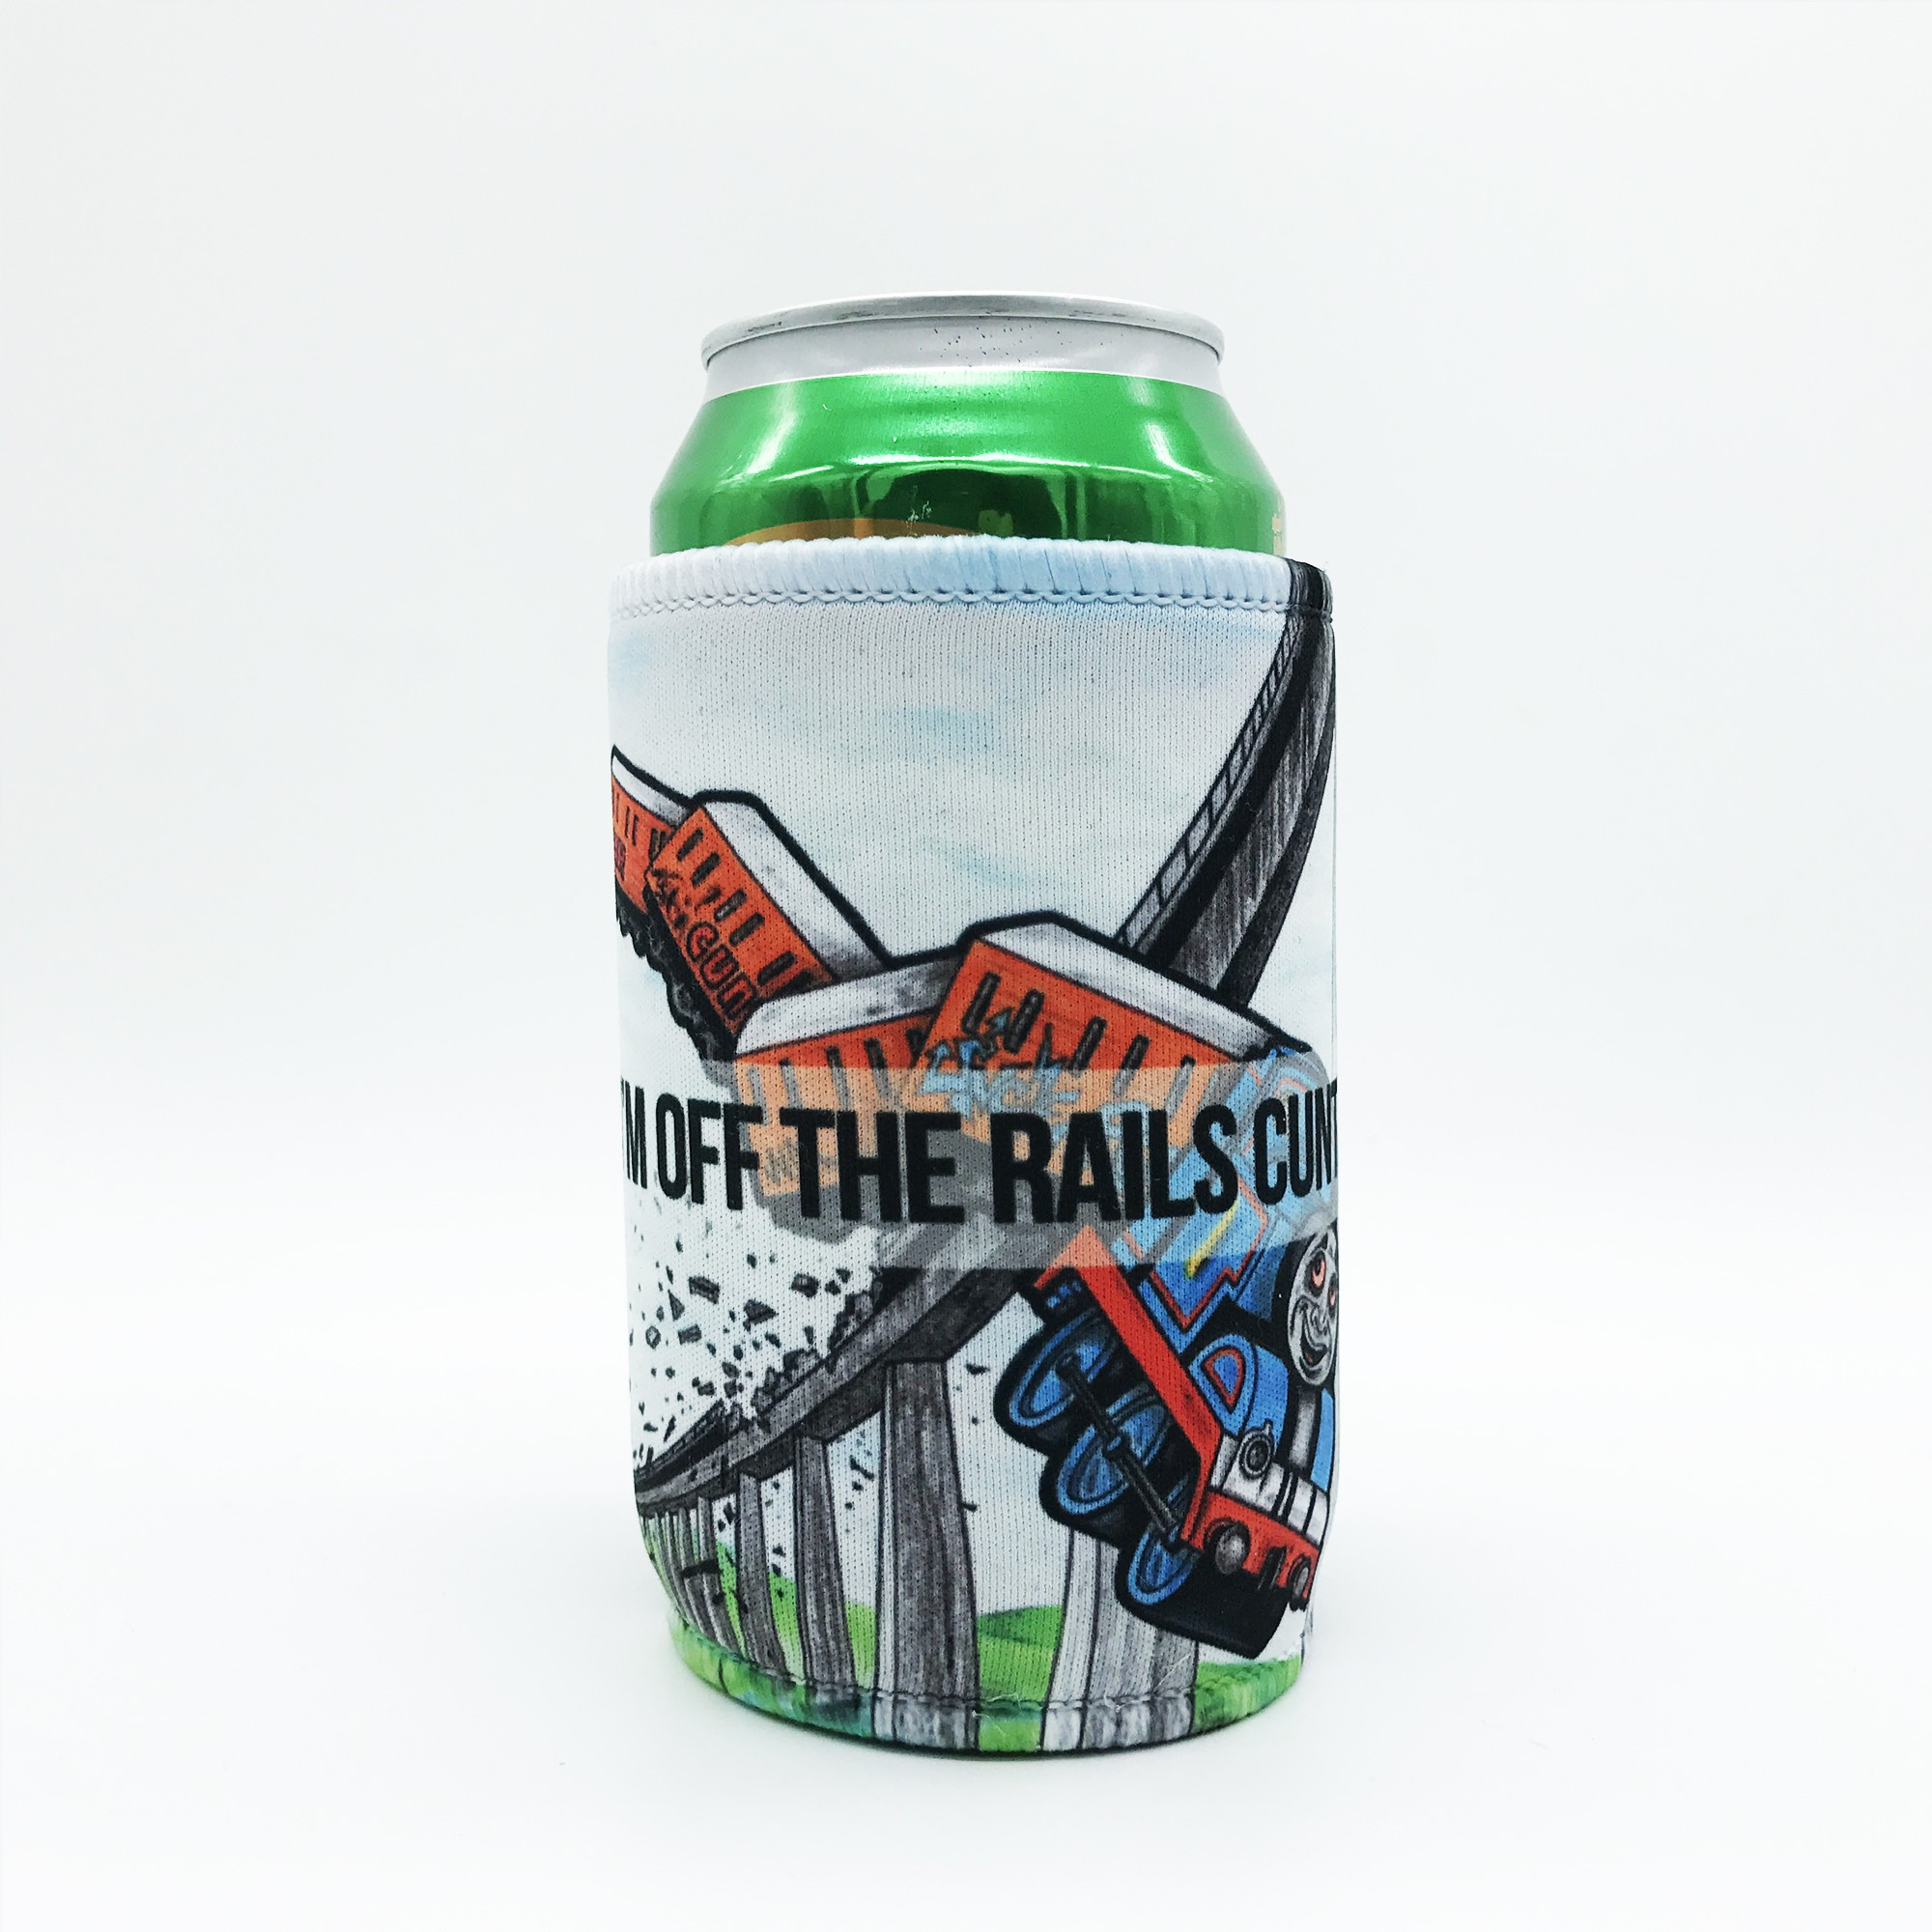 OFF THE RAILS STUBBY HOLDER